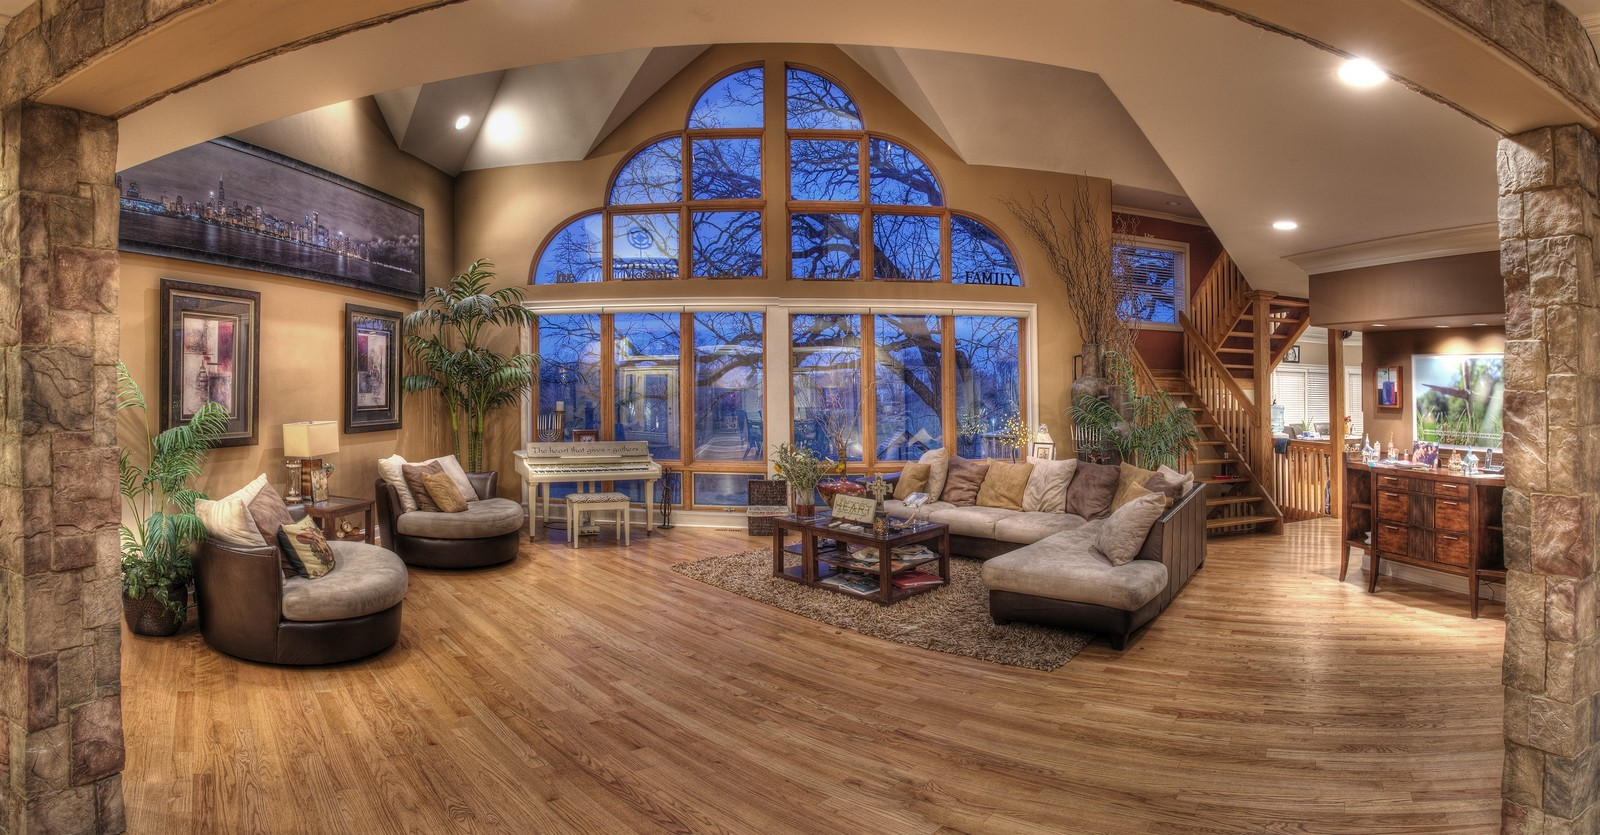 Real Estate Photography - 35w740 Valley View Road, West Dundee, IL, 60118 - Living Room